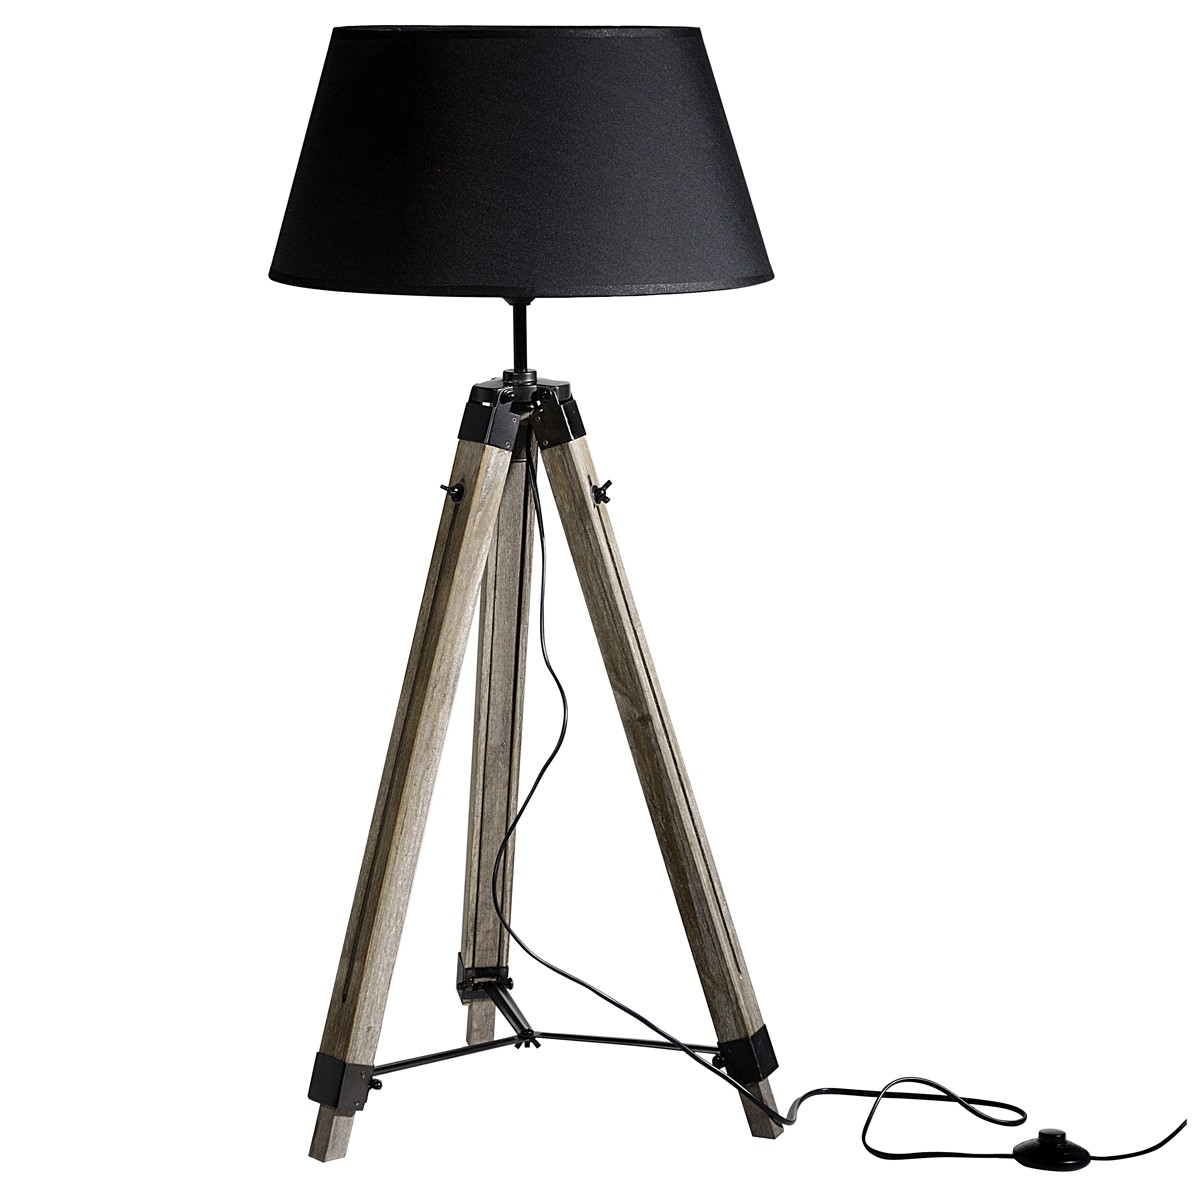 lampadaire tr pied navy bois koya design. Black Bedroom Furniture Sets. Home Design Ideas